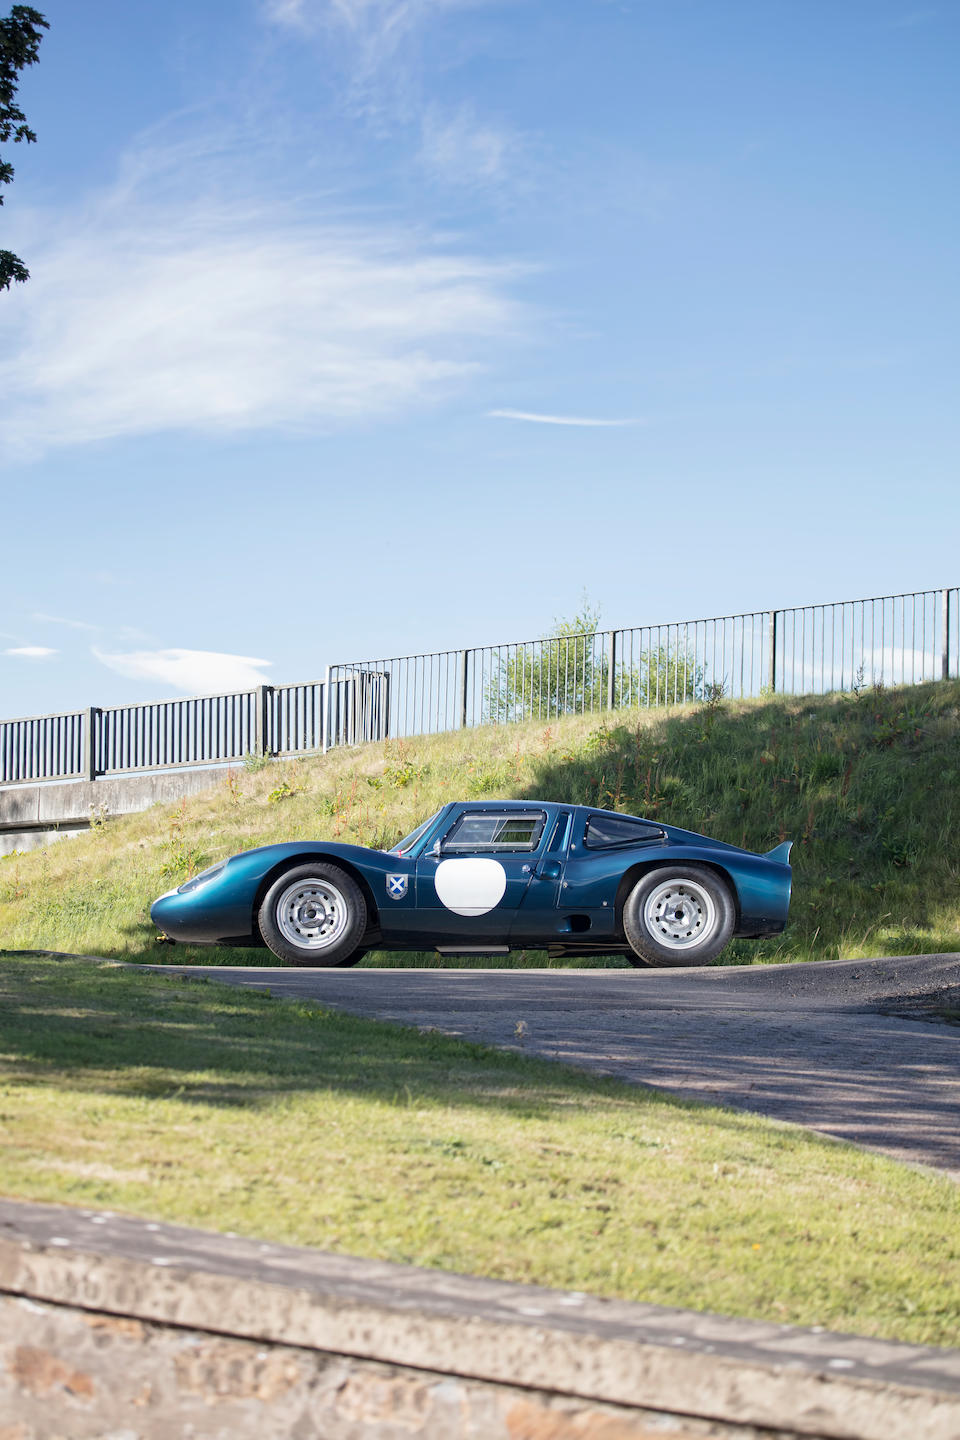 The Ex-Ecurie Ecosse,1962 Tojeiro EE-Ford Endurance Racing Coupe  Chassis no. TAD-1-64